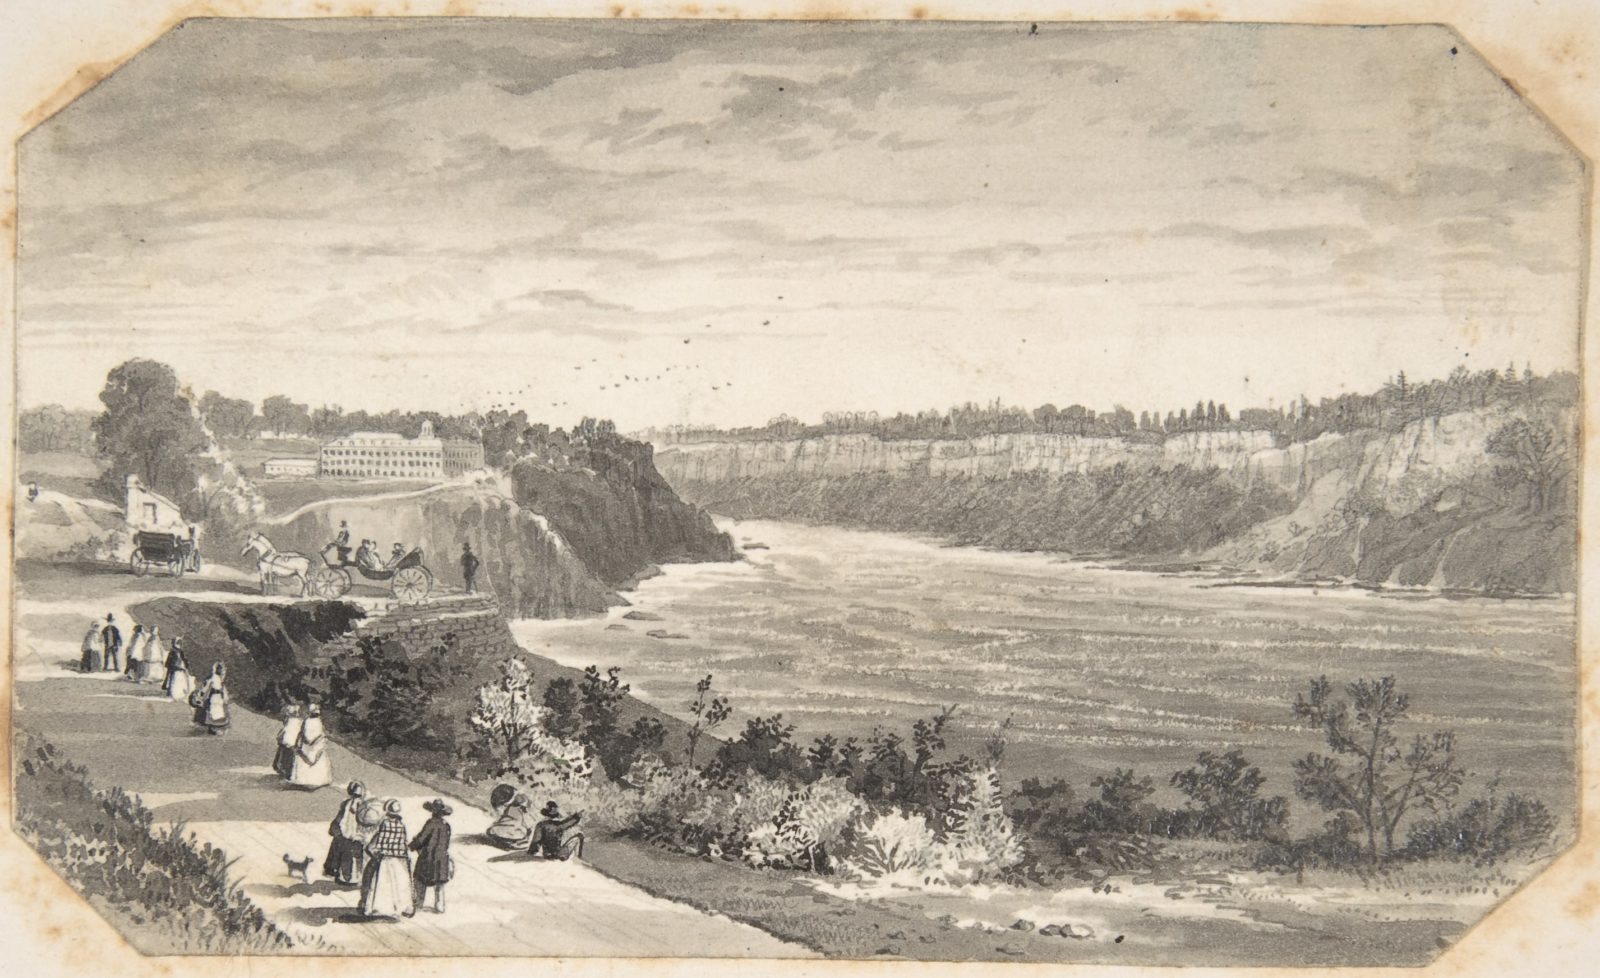 View of a river with a promenade